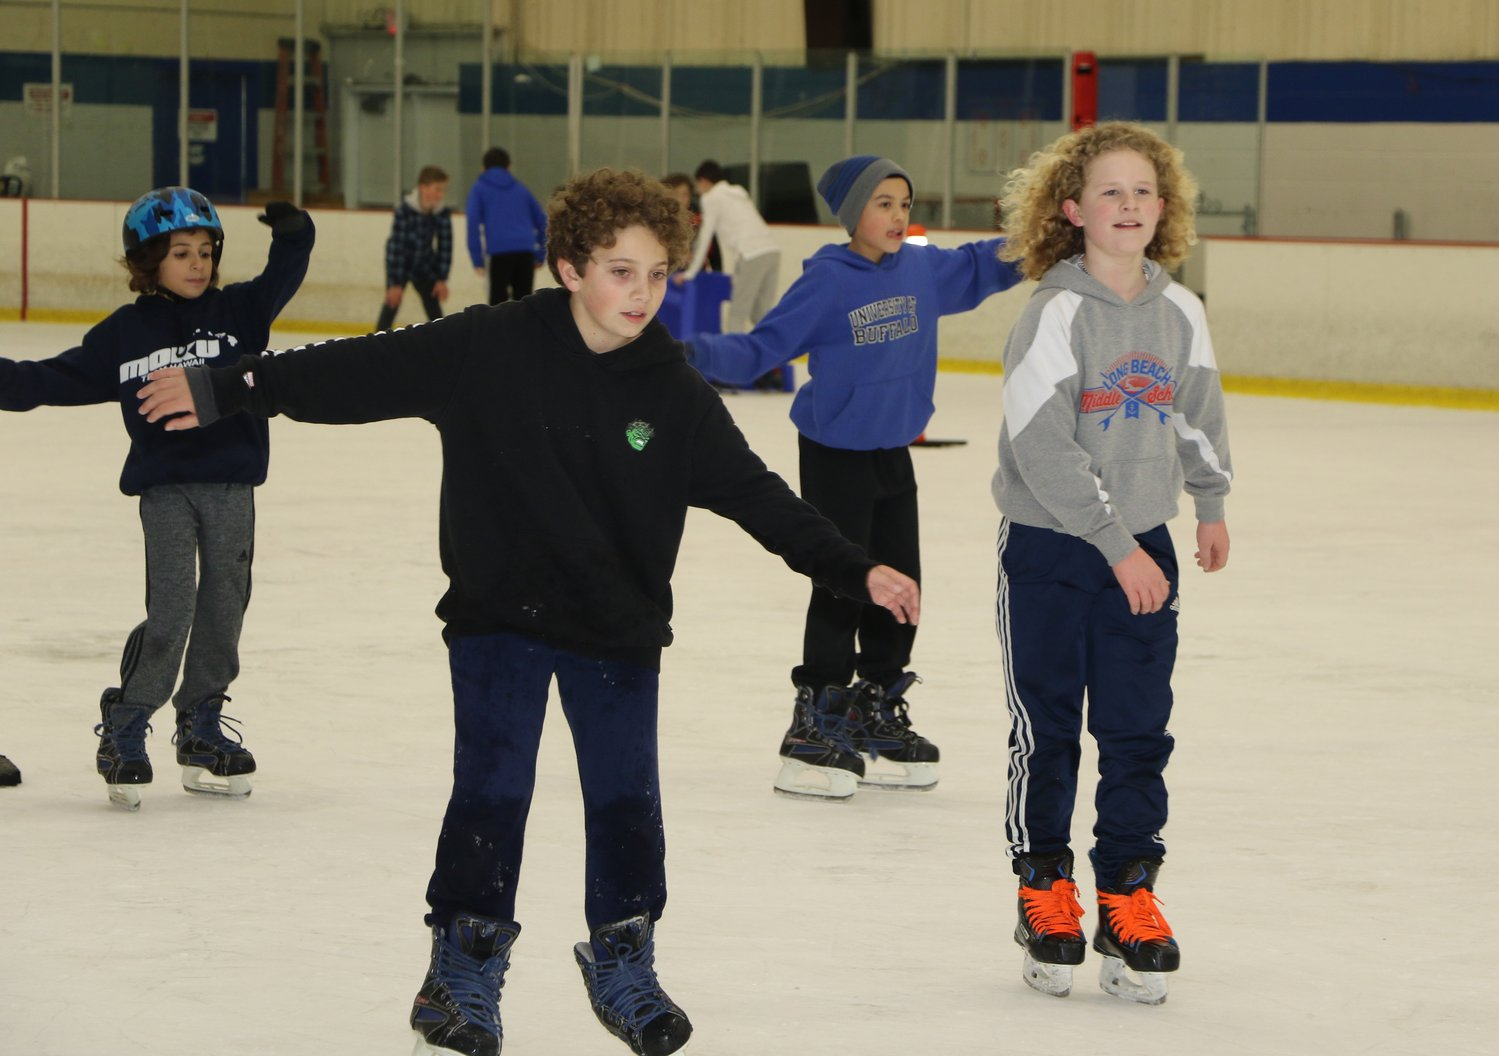 Long Beach Middle School students skated together at Tween Nite Out at the Long Beach Ice Arena on March 22.